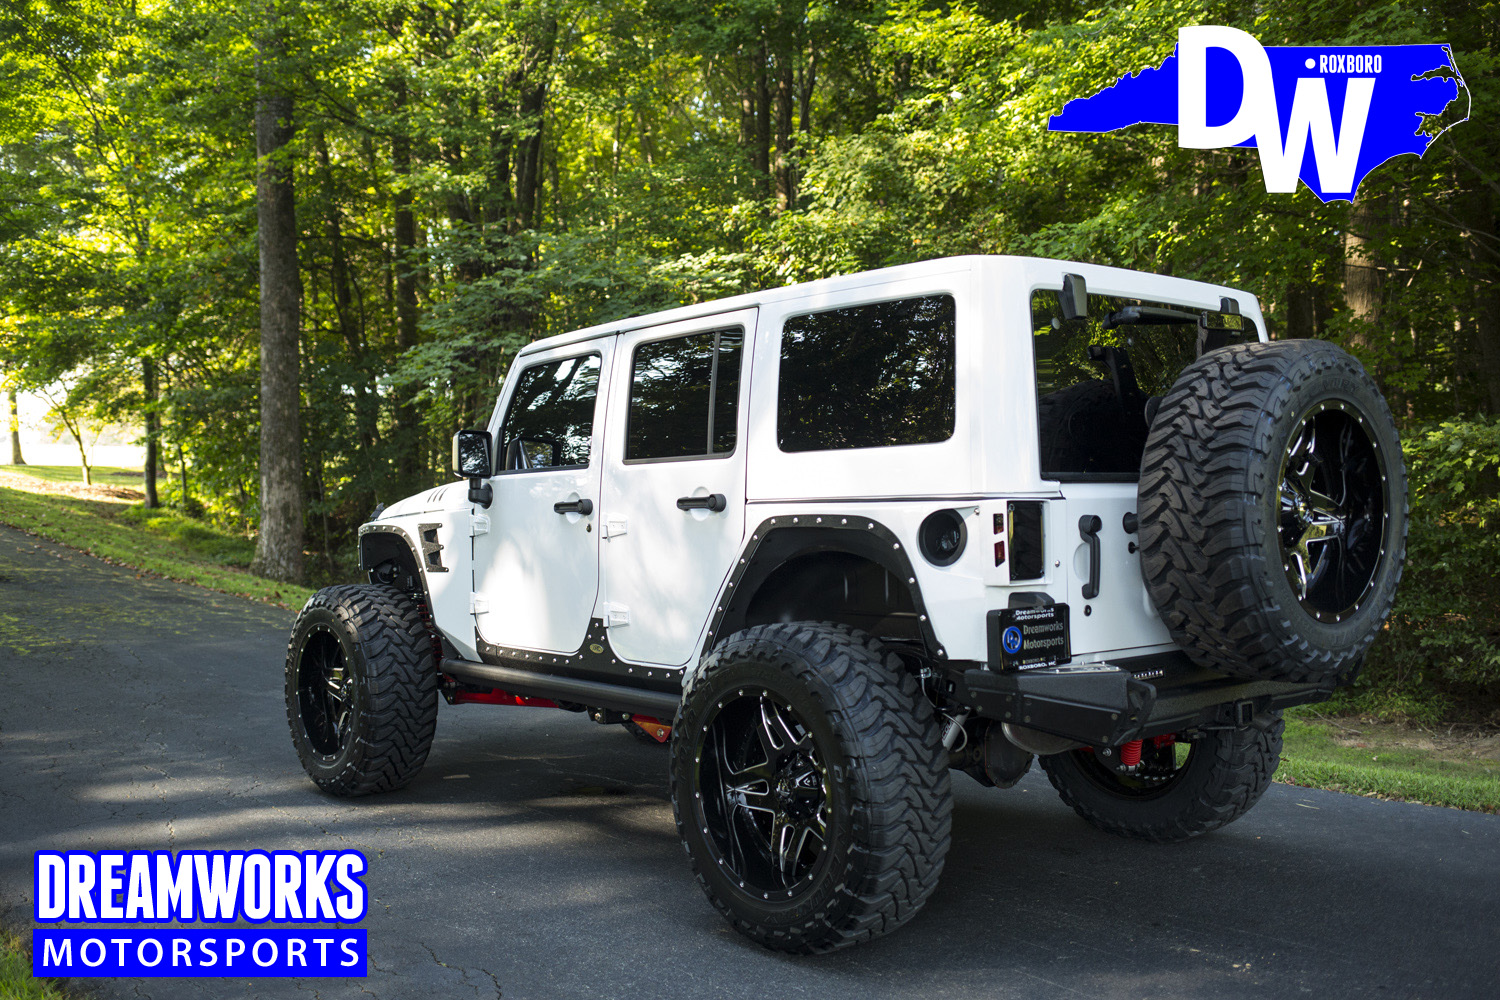 Gerald-Wallas-White-Jeep-by-Dreamworksmotorsports-15.jpg